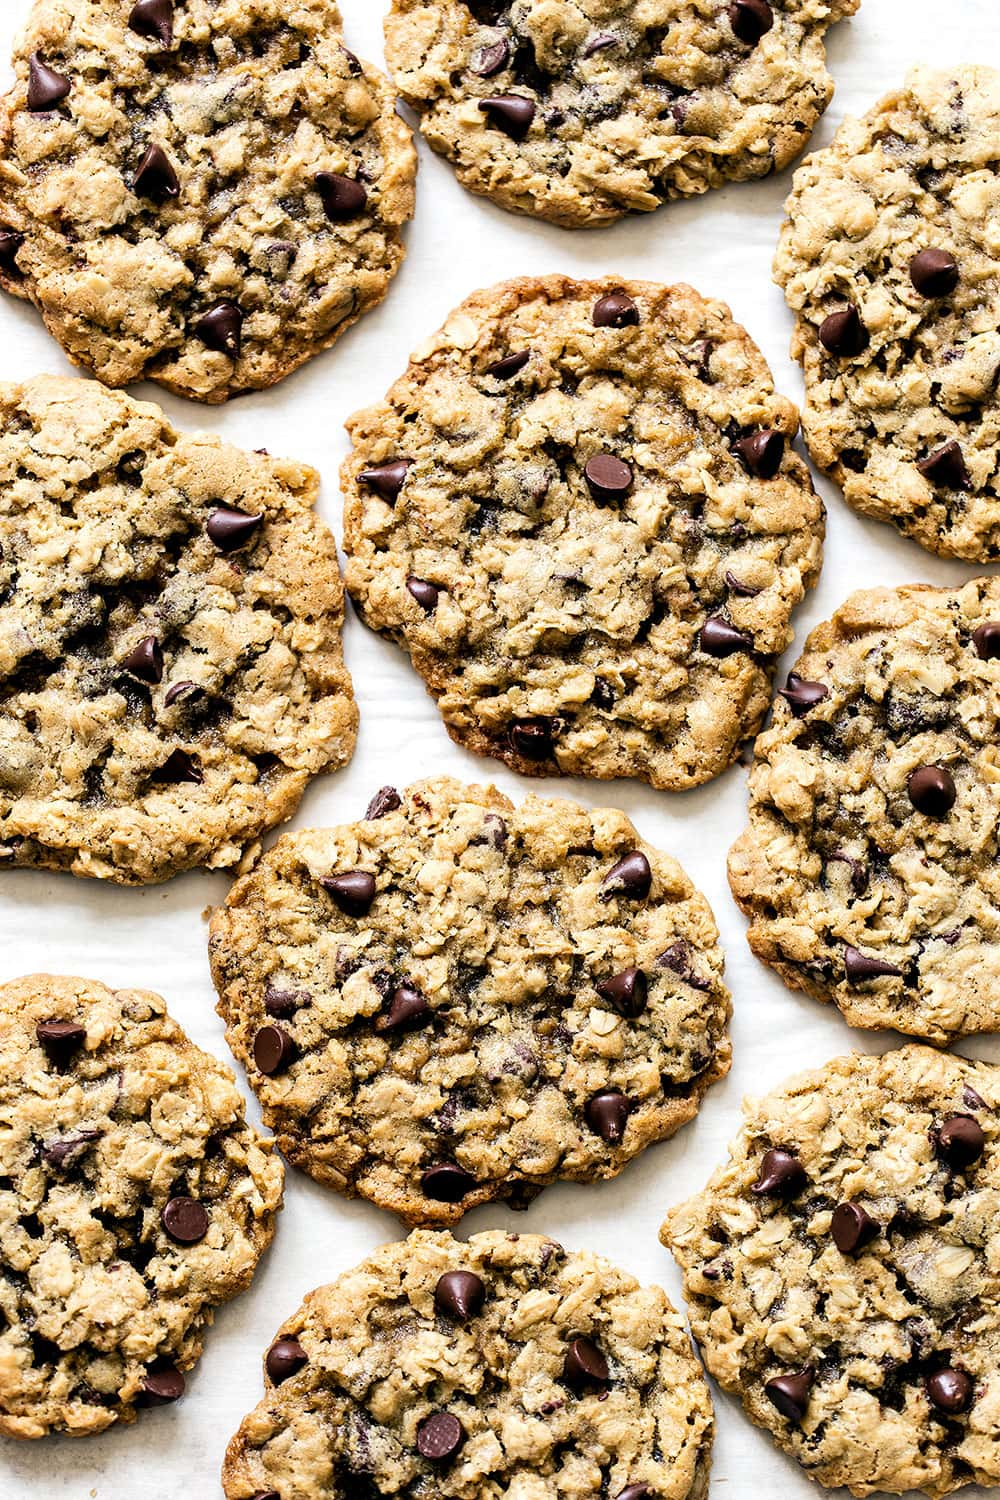 Homemade oatmeal chocolate chip cookies on a counter